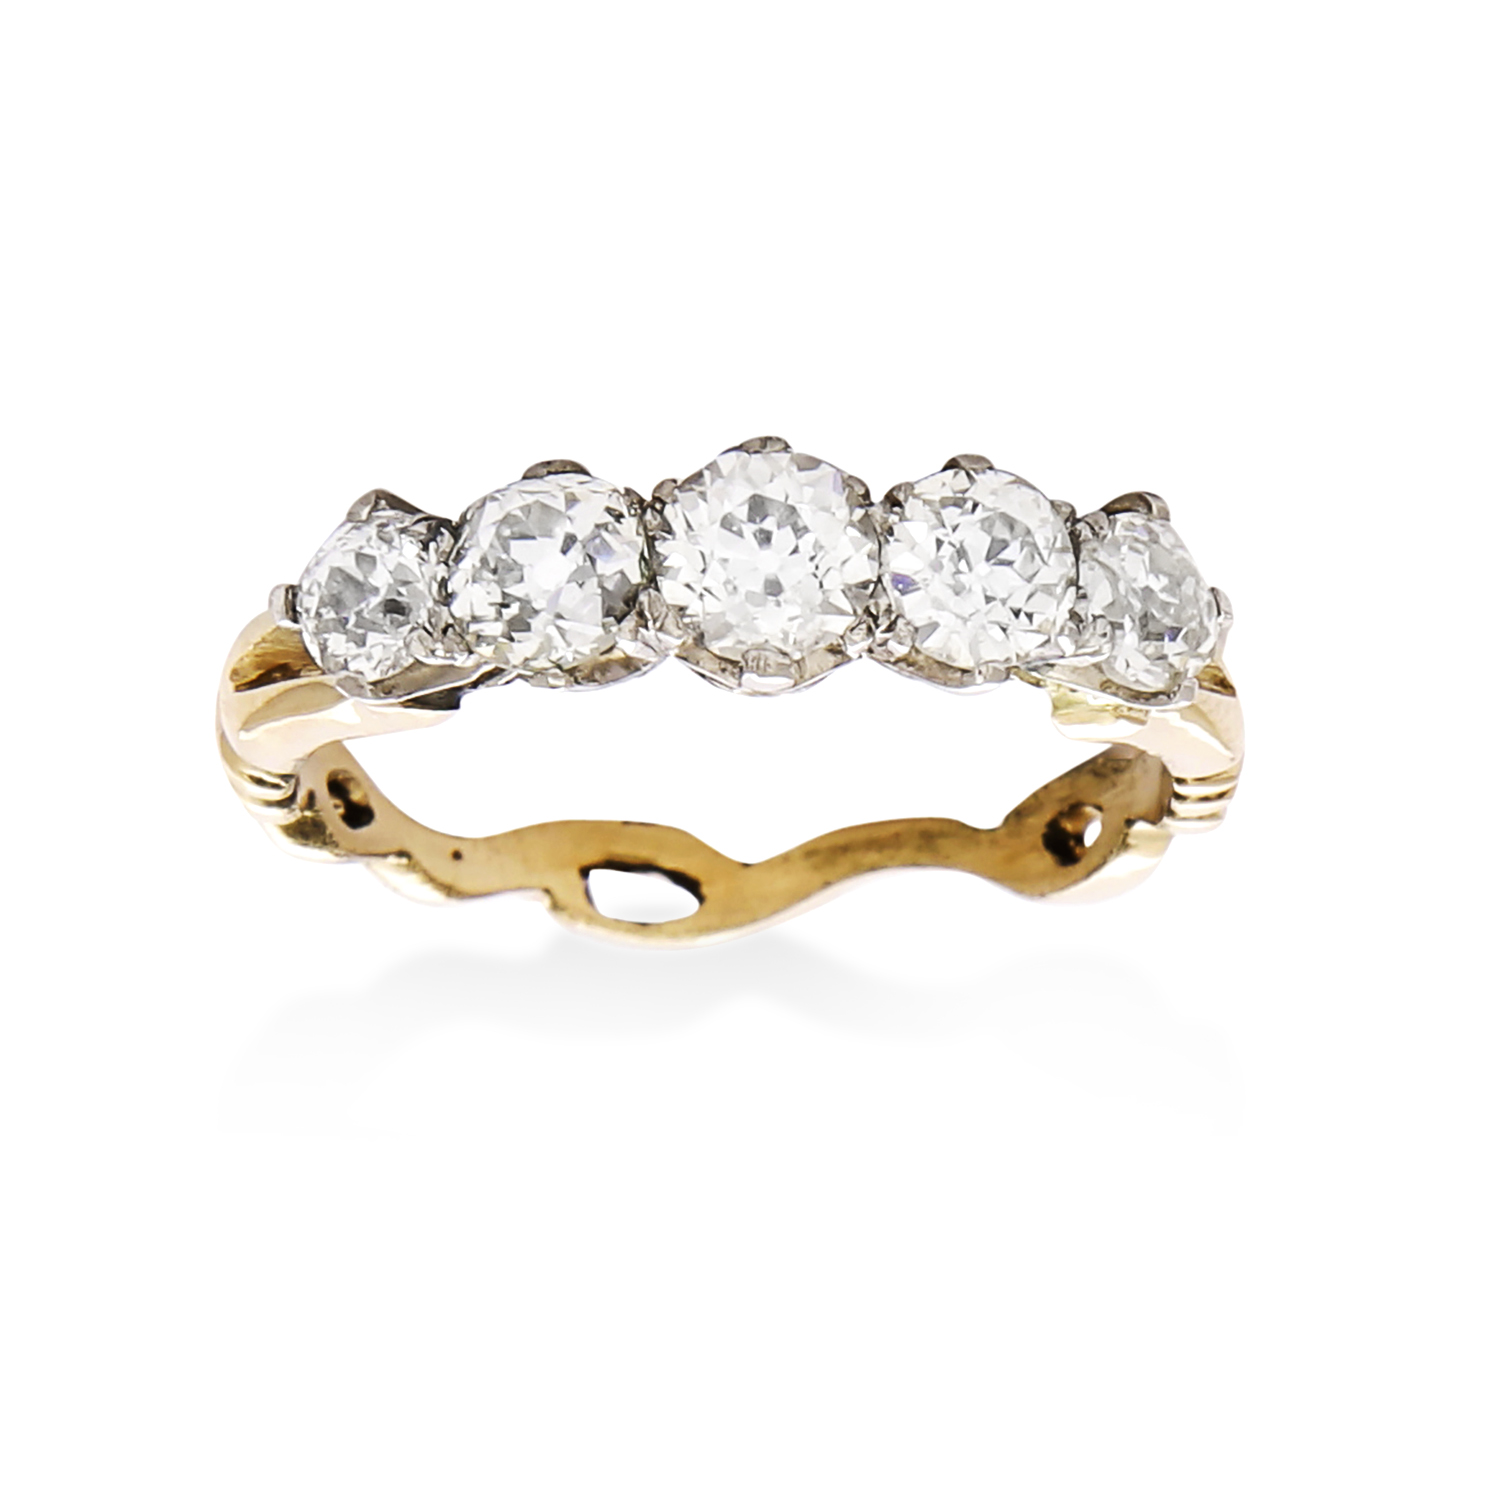 Los 9 - A 1.60 CARAT DIAMOND FIVE STONE RING in high carat yellow and white gold, set with a graduated row